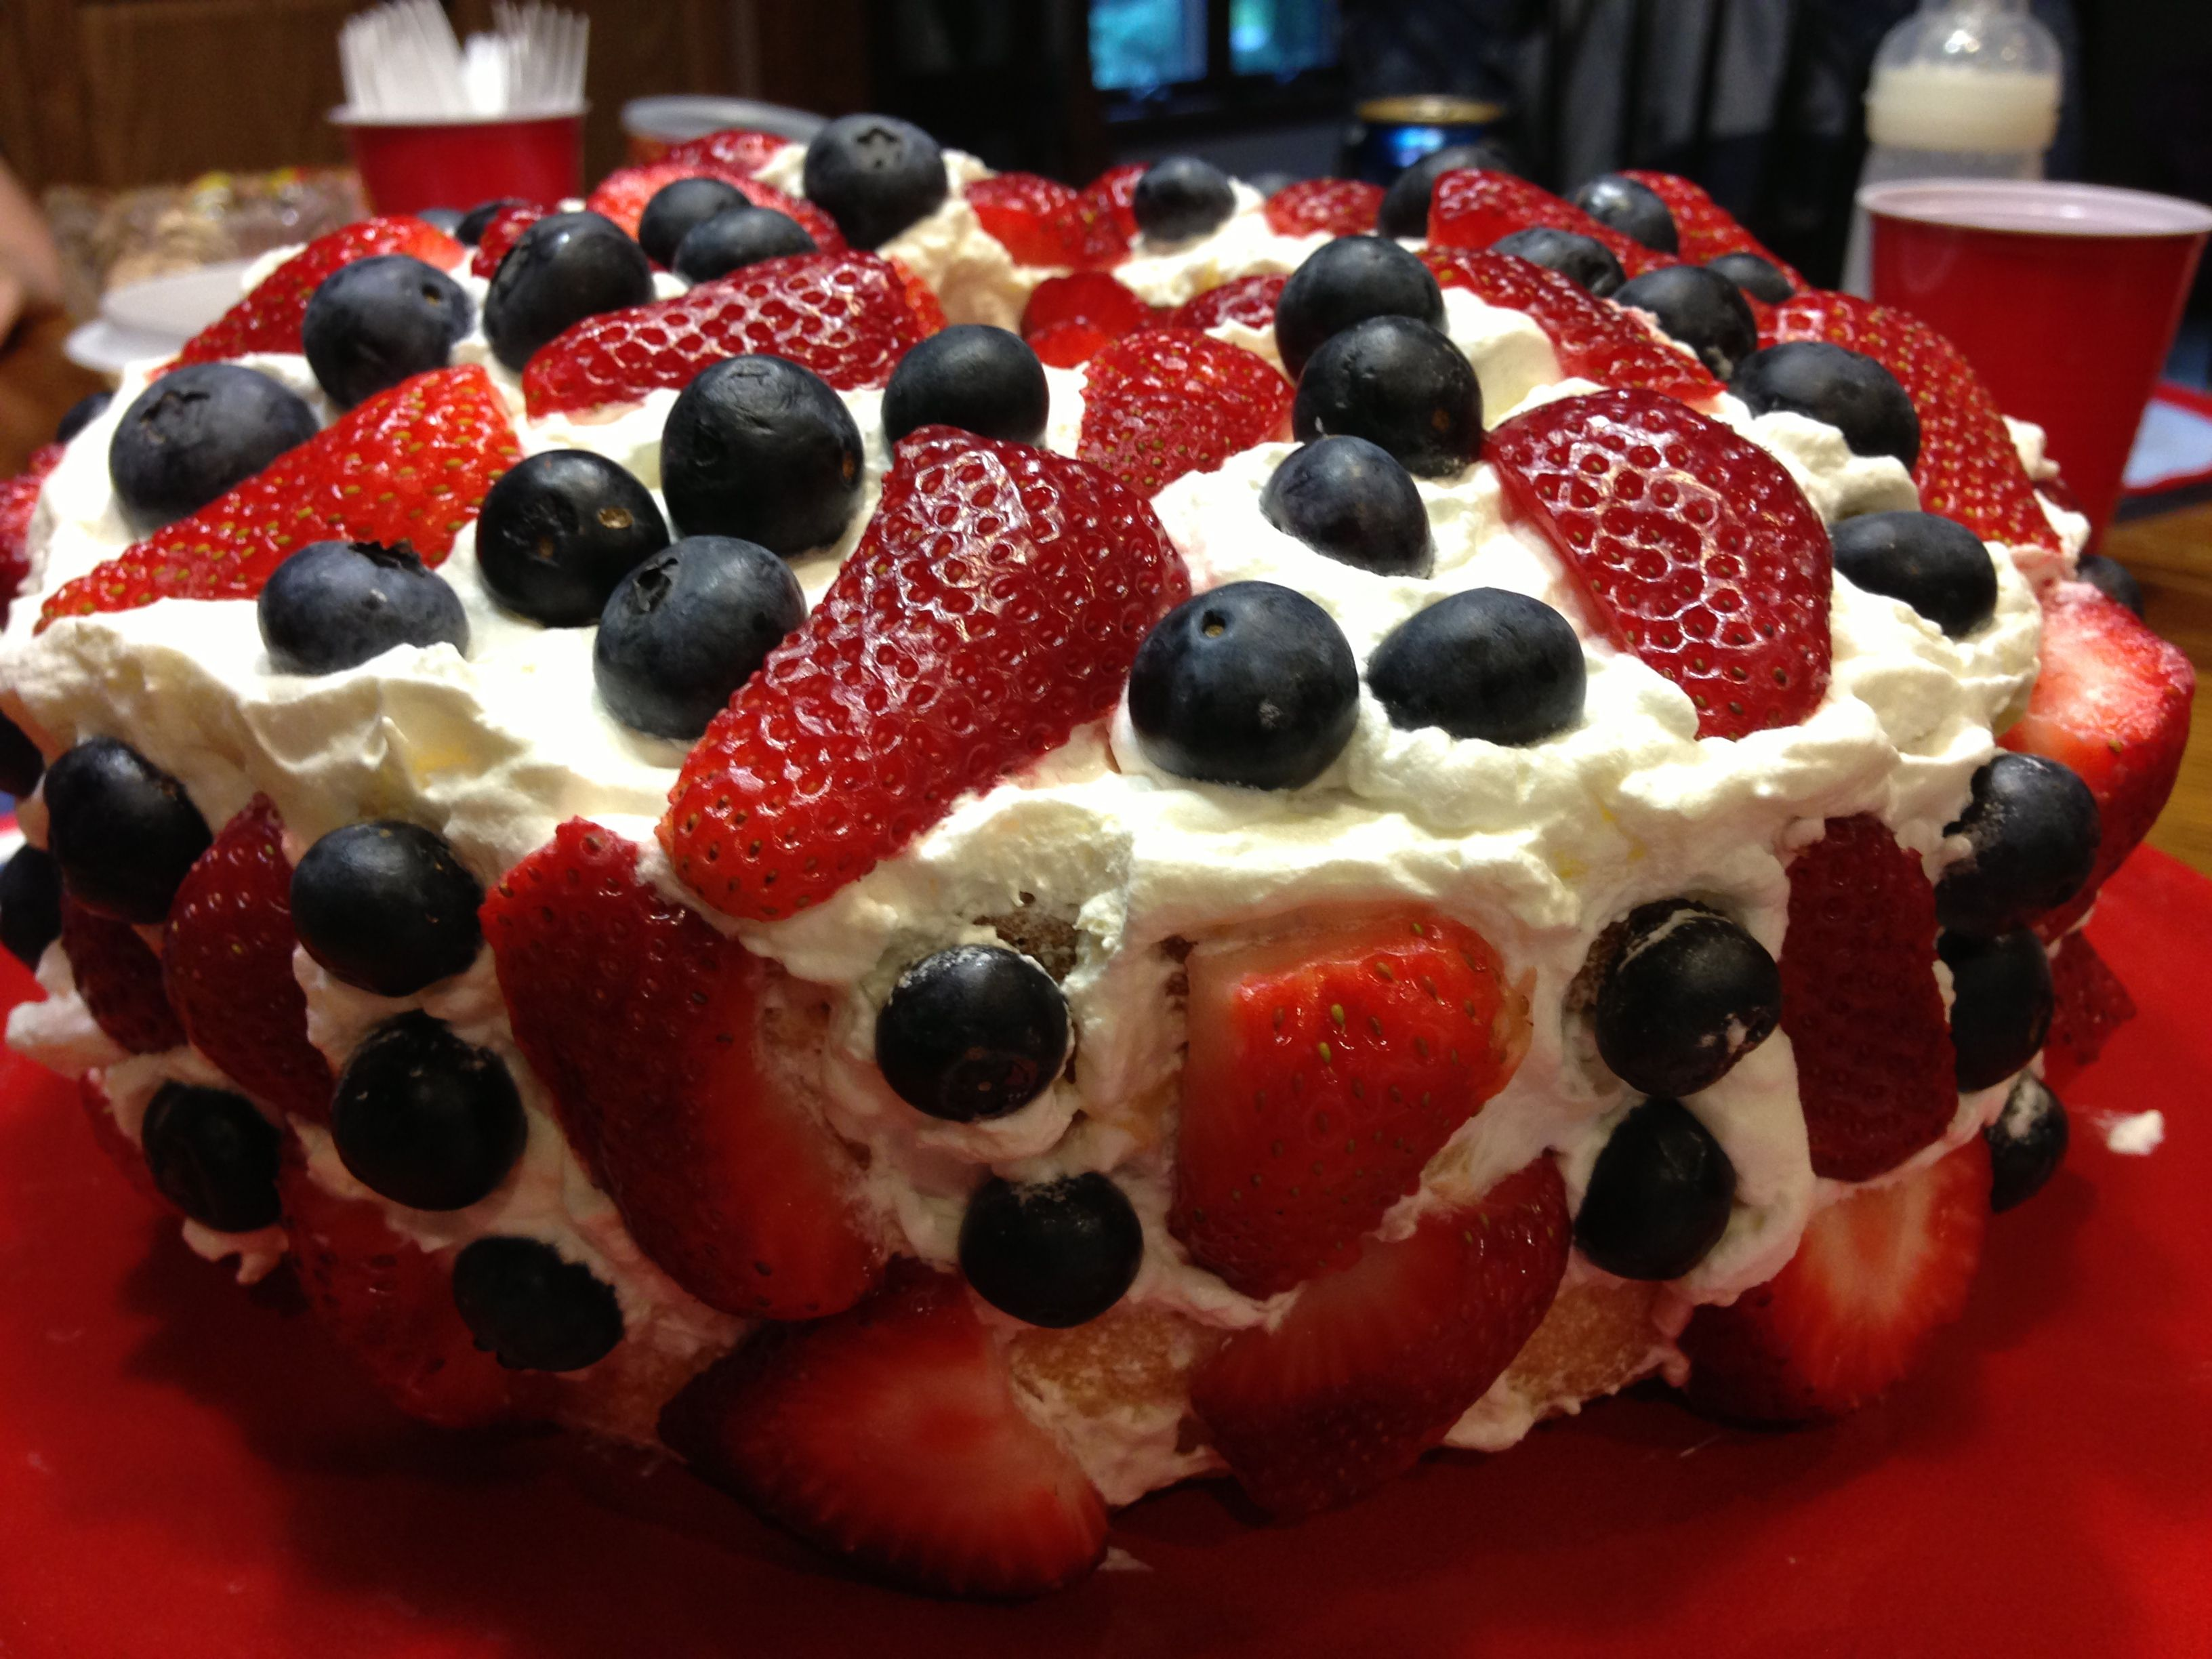 Blueberry cool whip cake